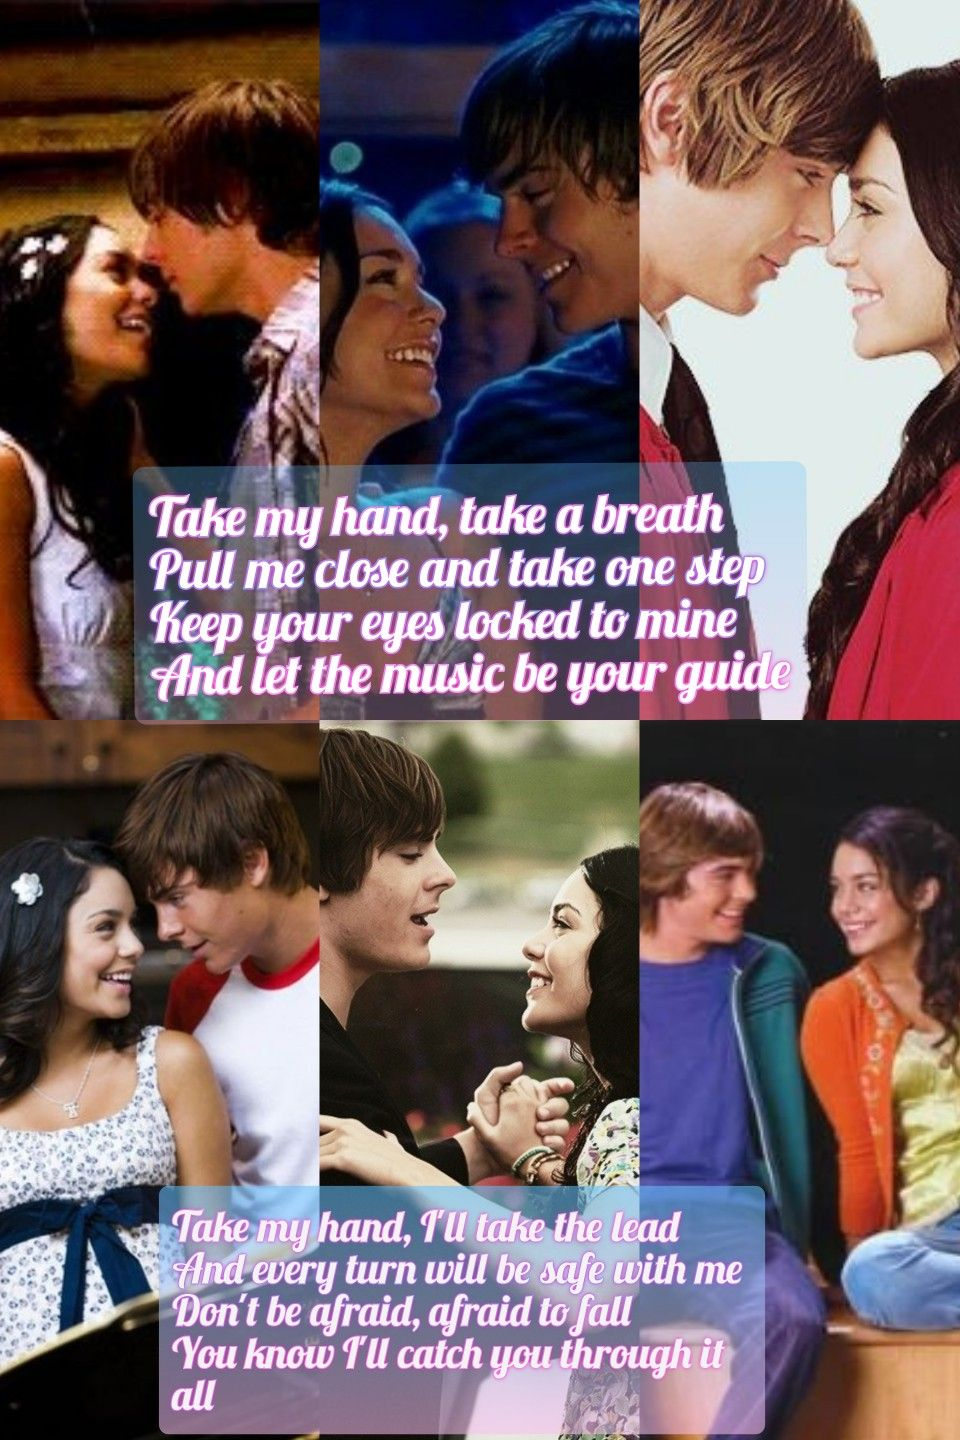 Hsm Troy and Gabriella in 2020 High school musical, High